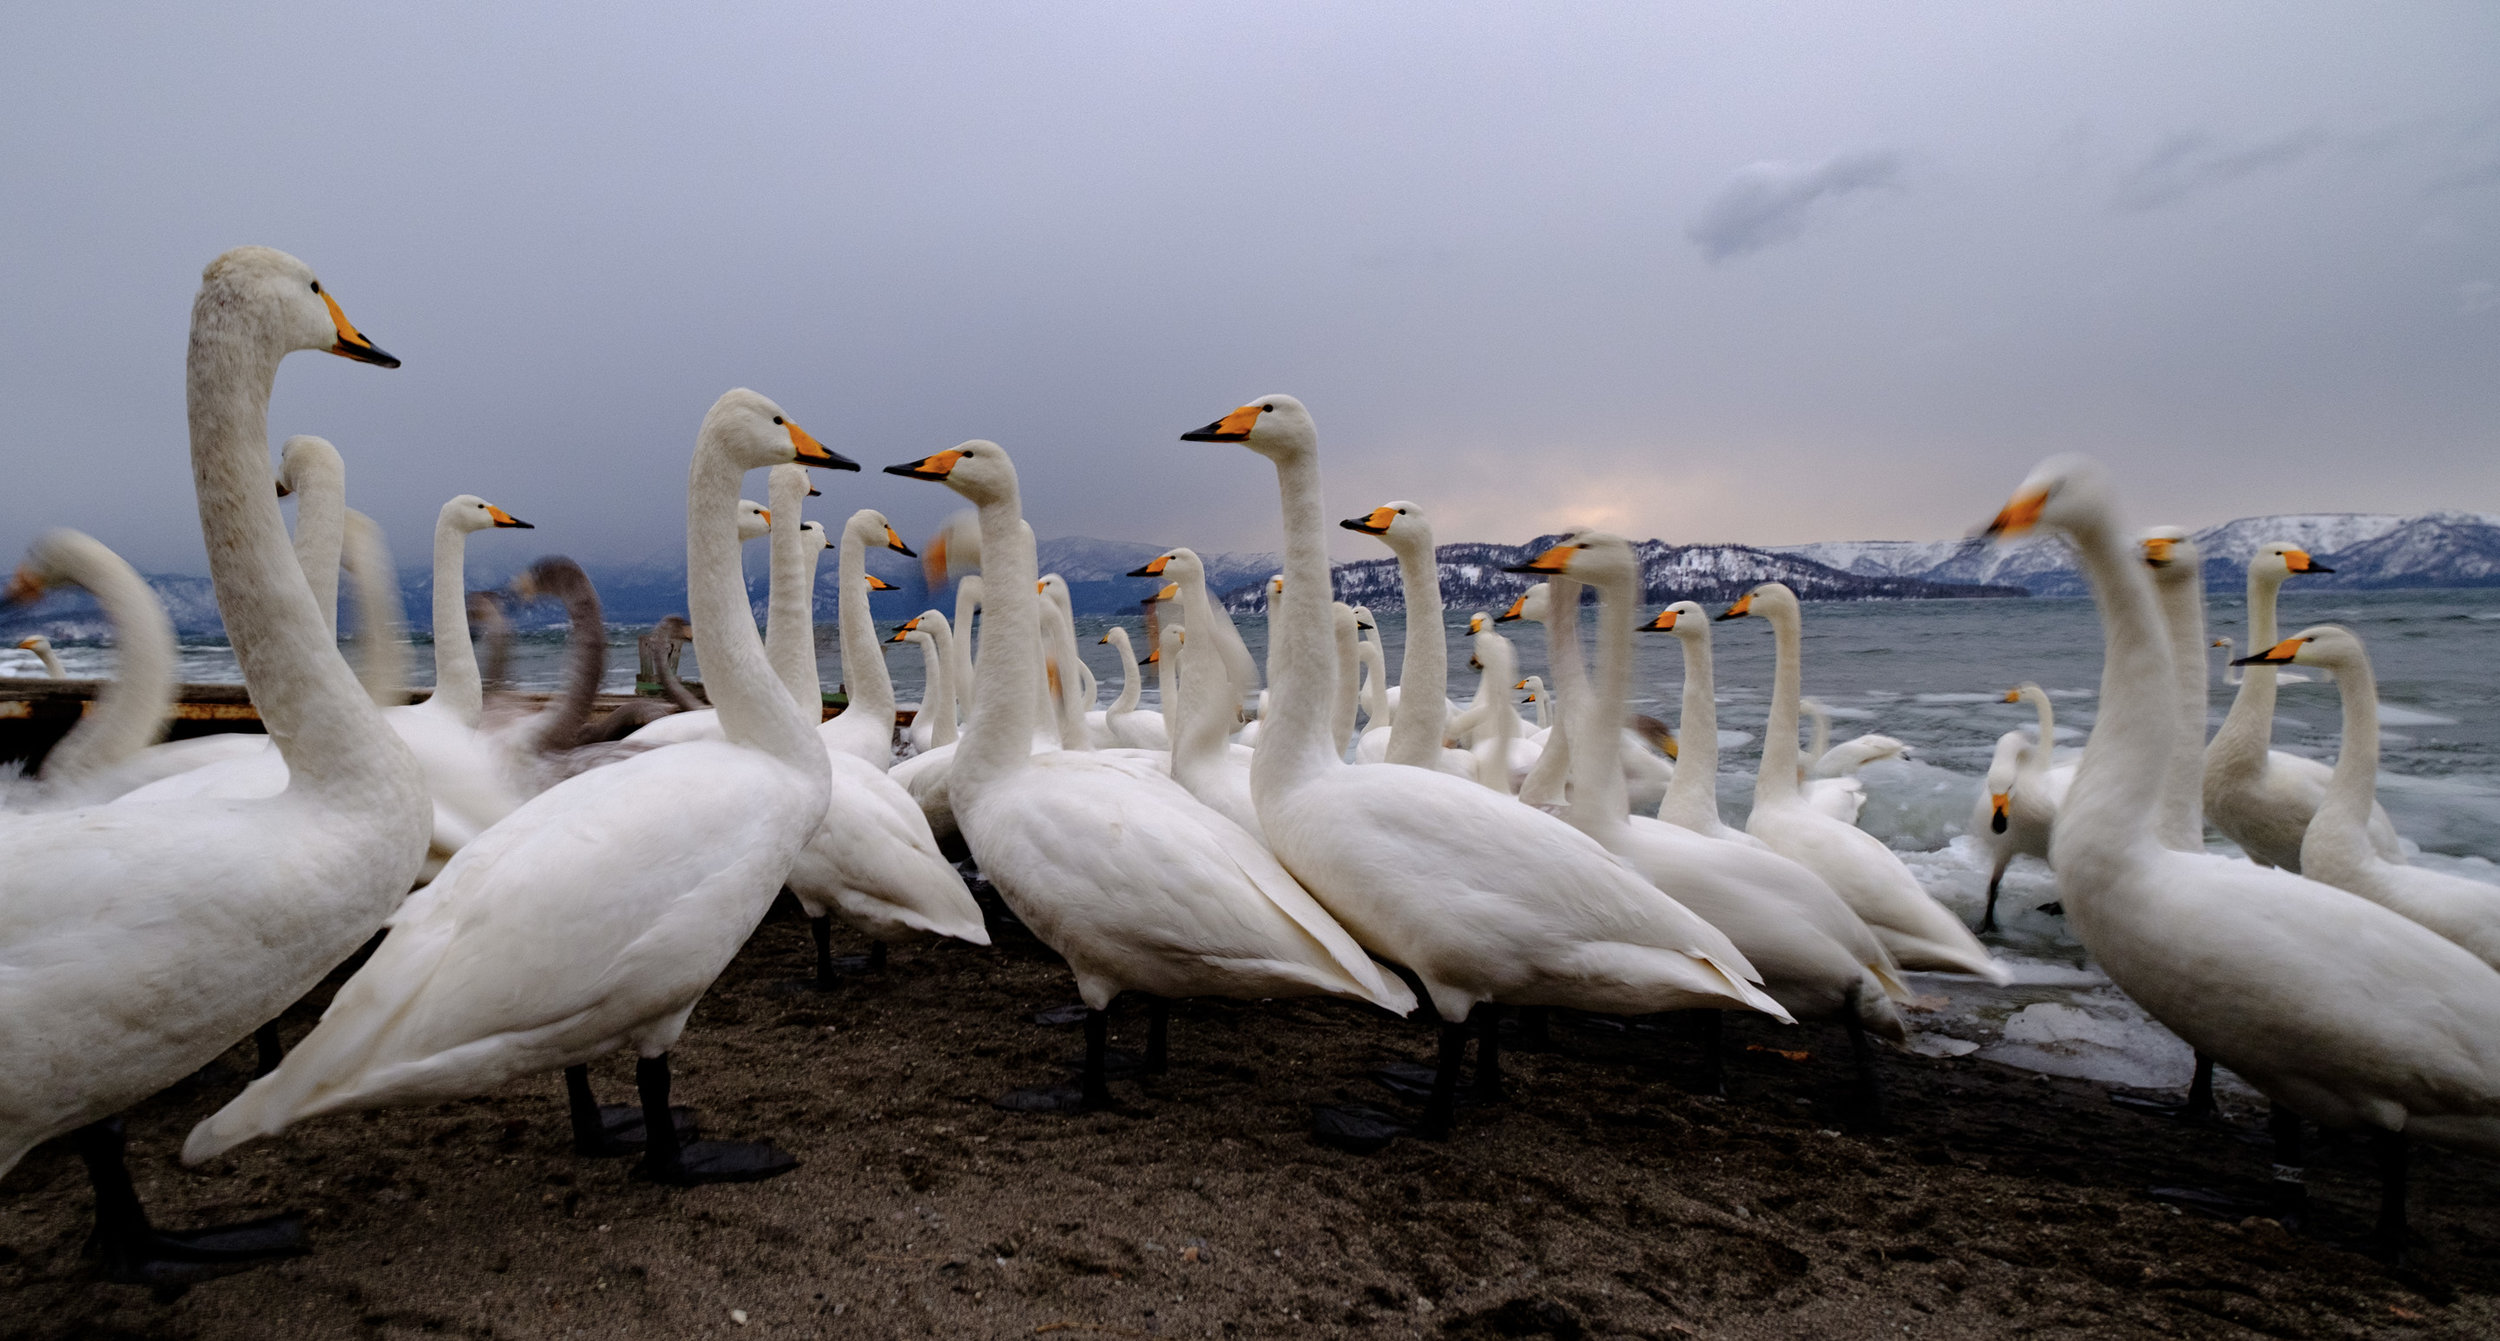 Whooper Swans - 10mm, F4, 1/6s at ISO 640